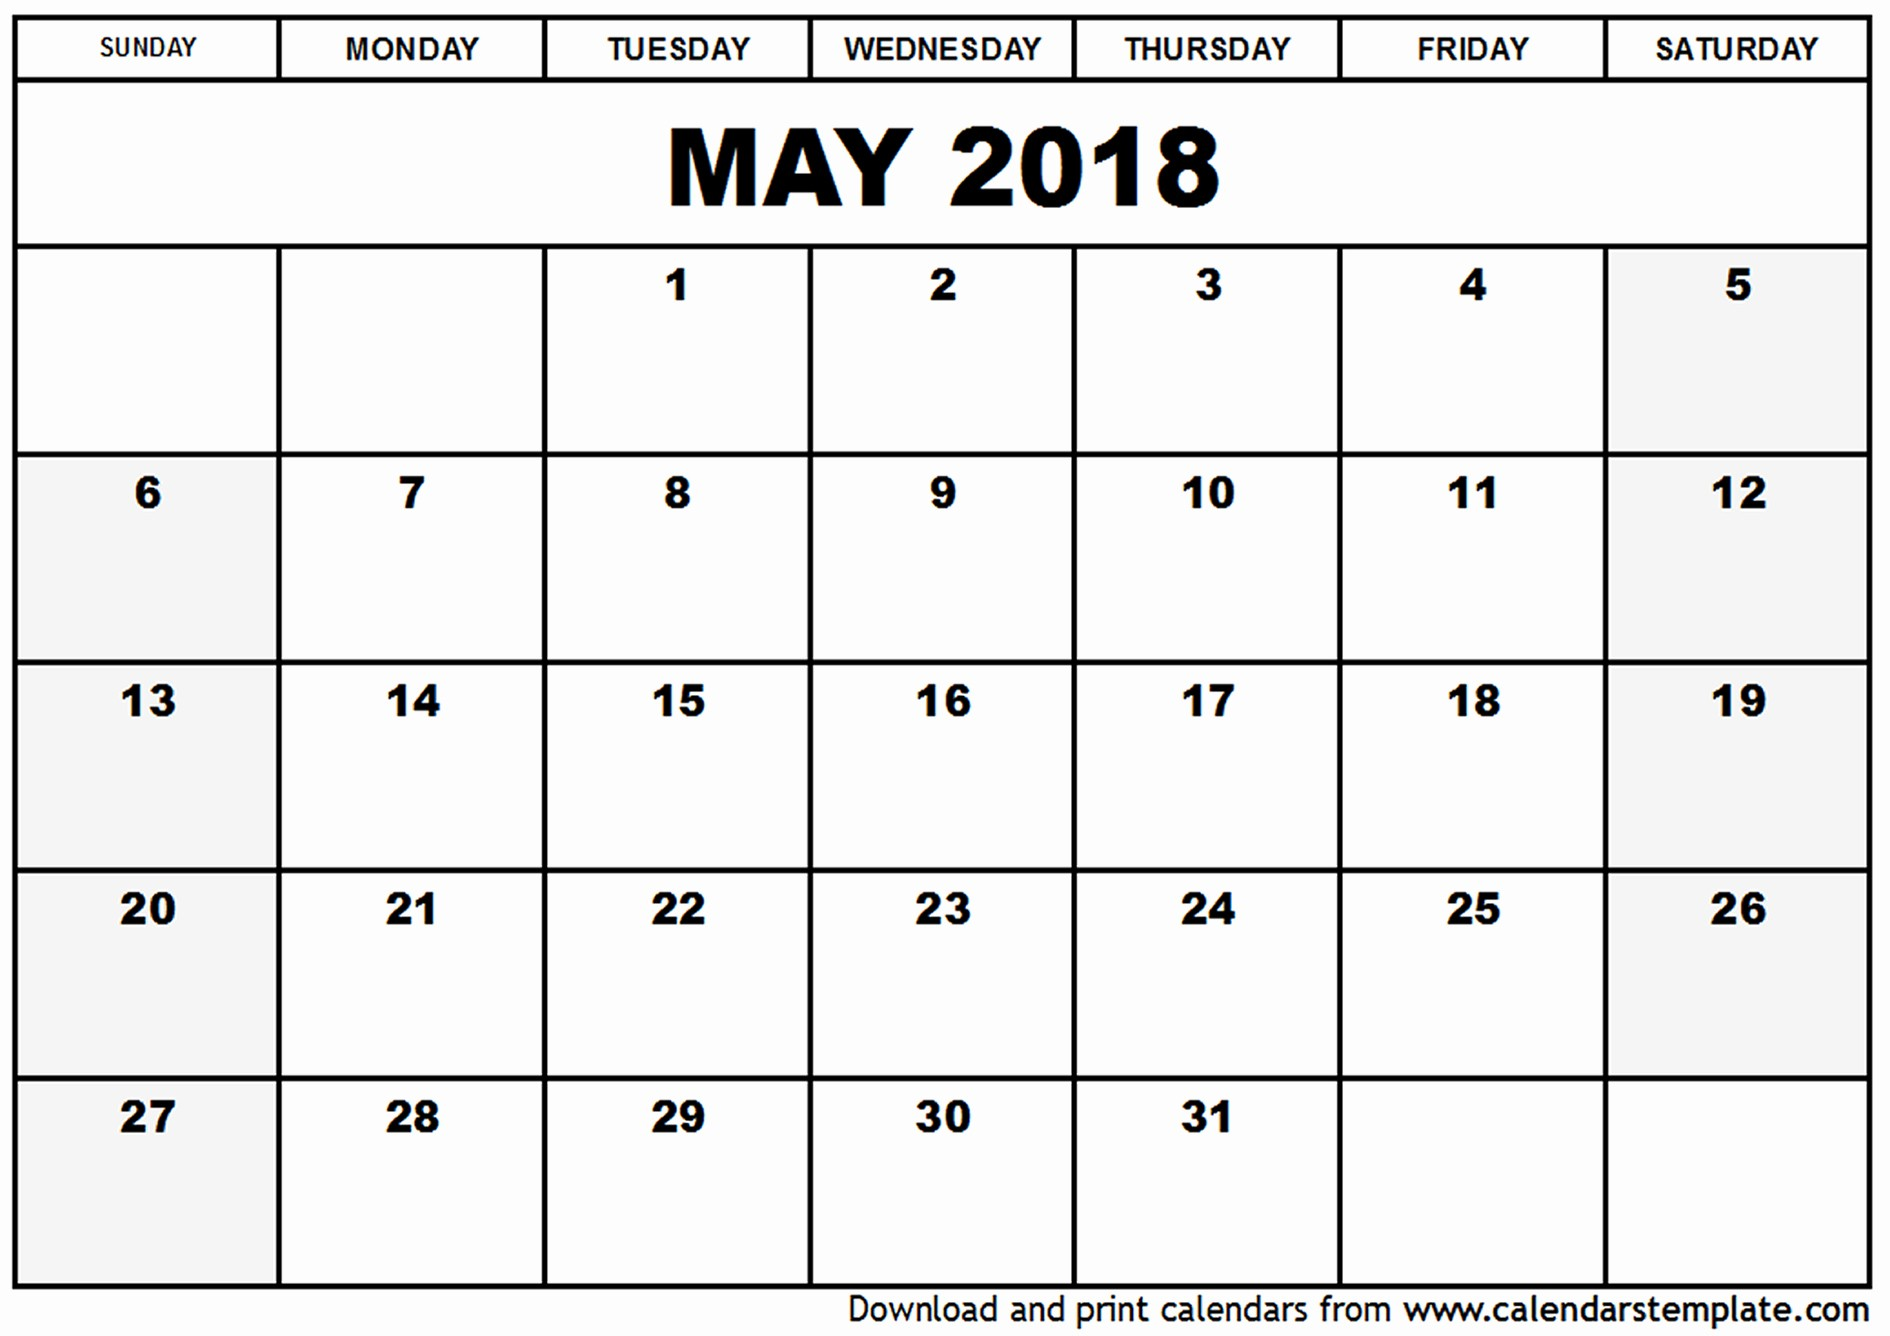 Microsoft Word 2018 Calendar Templates Inspirational May 2018 Calendar Word